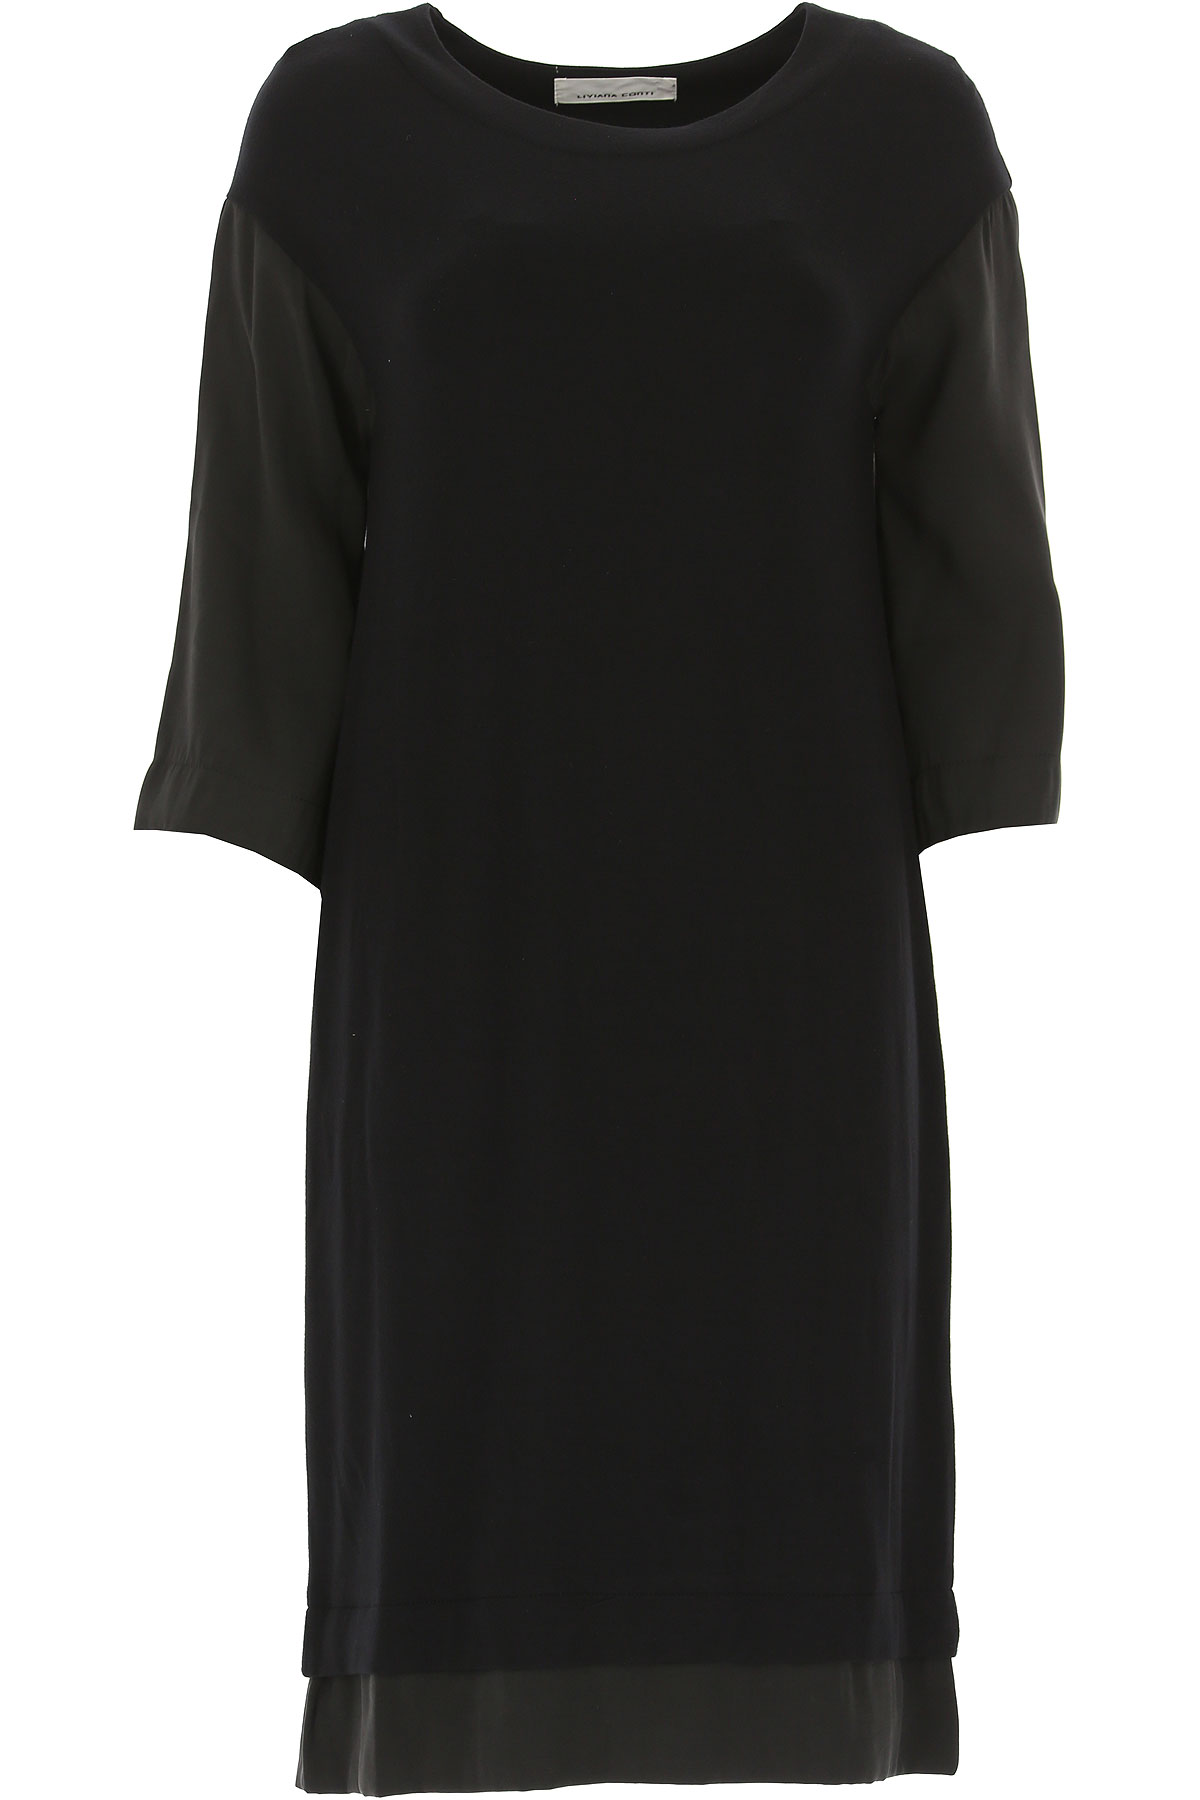 Image of Liviana Conti Dress for Women, Evening Cocktail Party, Black, Viscose, 2017, 4 6